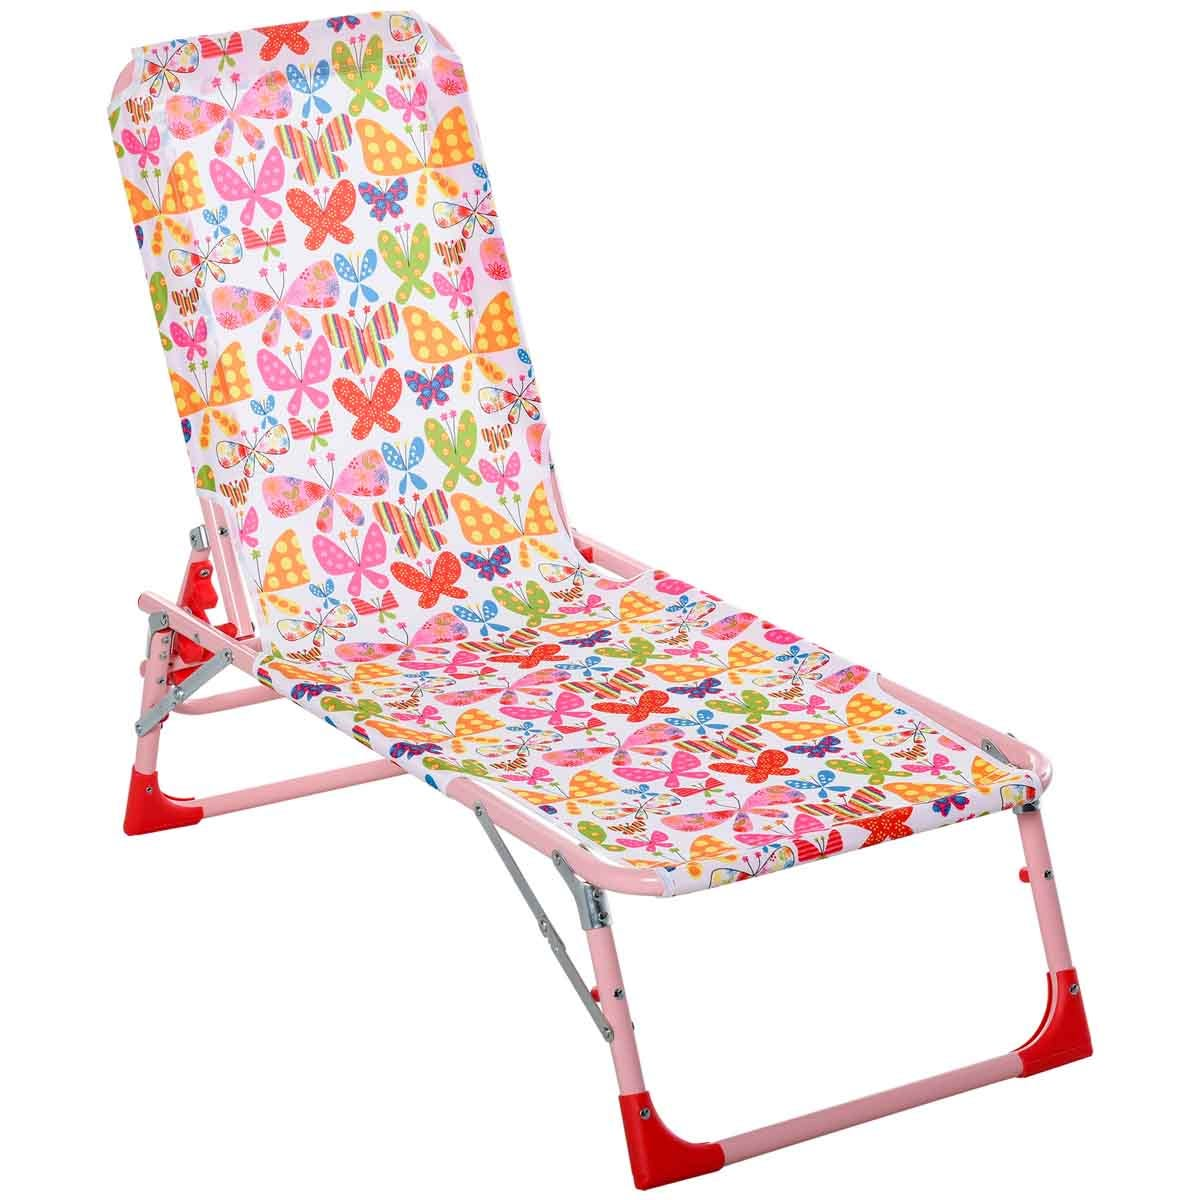 Outsunny Childrens Sun Lounger in Butterfly Design